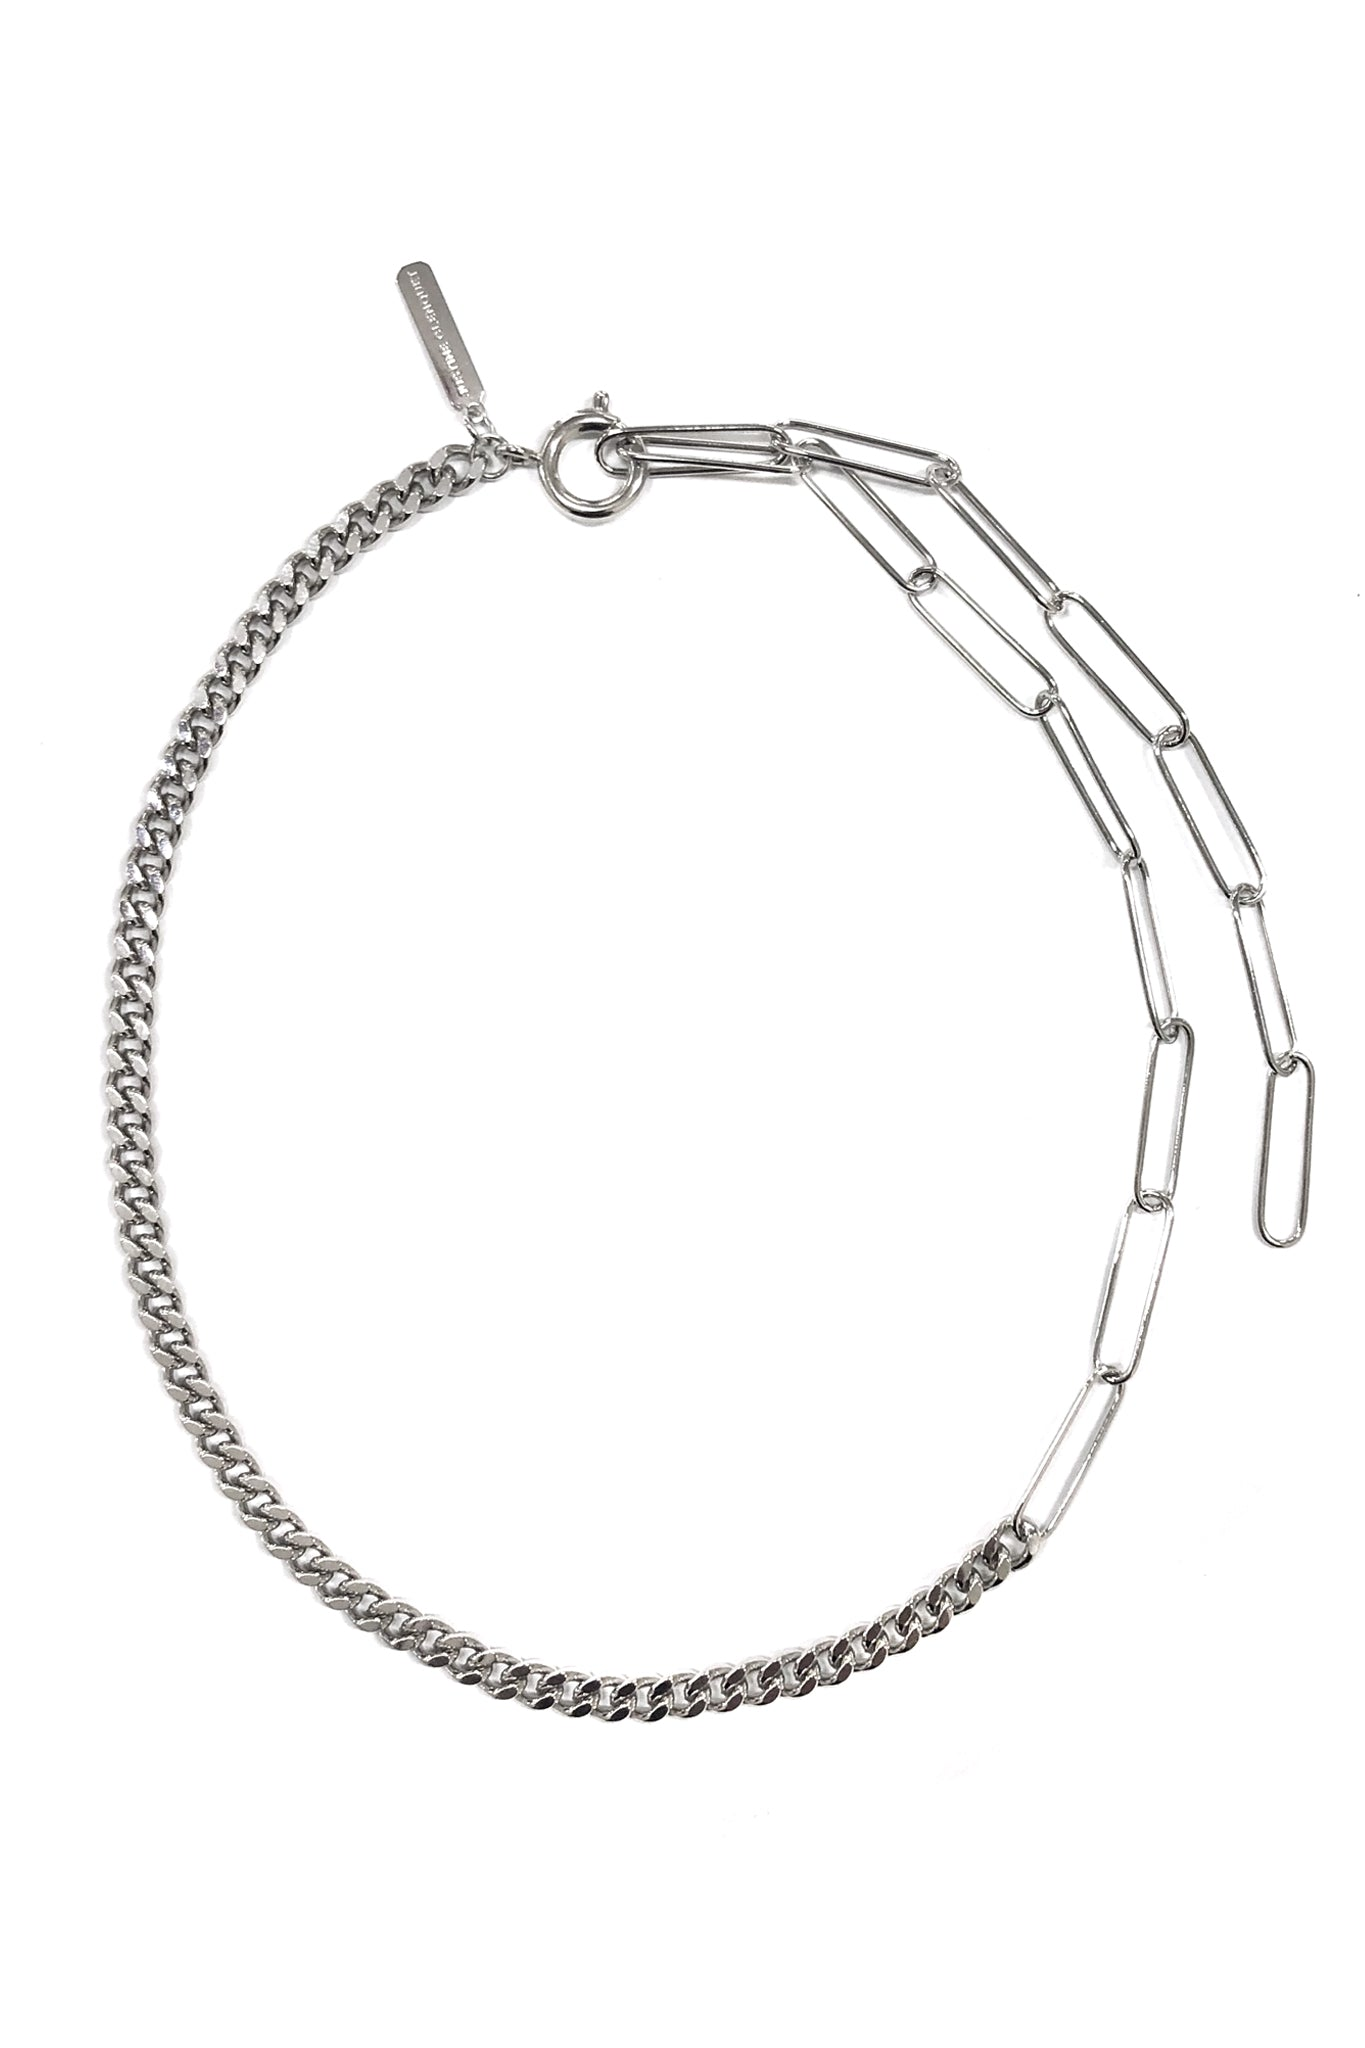 Justine Clenquet Nico Necklace